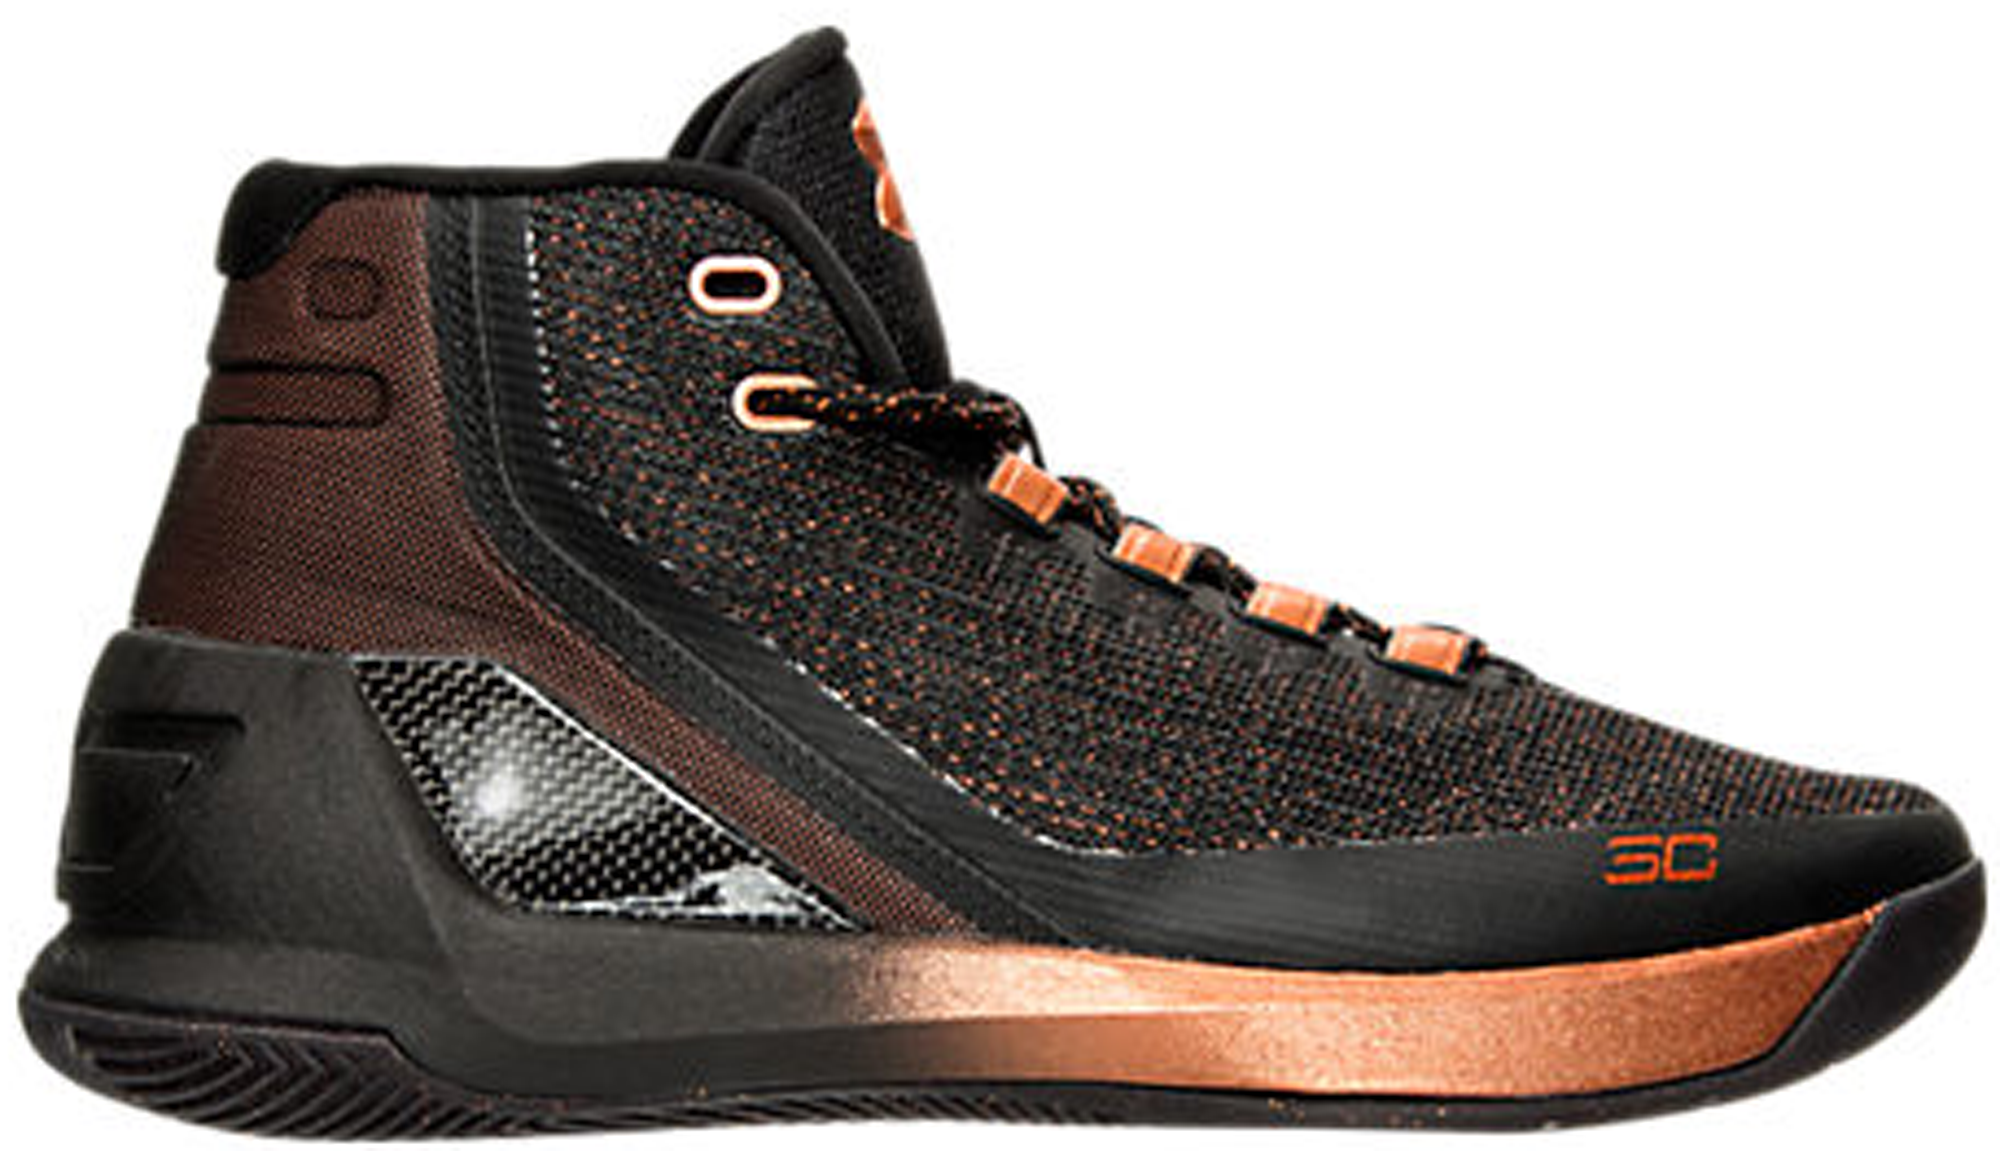 270772b6 Under Armour Curry 3 Brass Band - StockX News